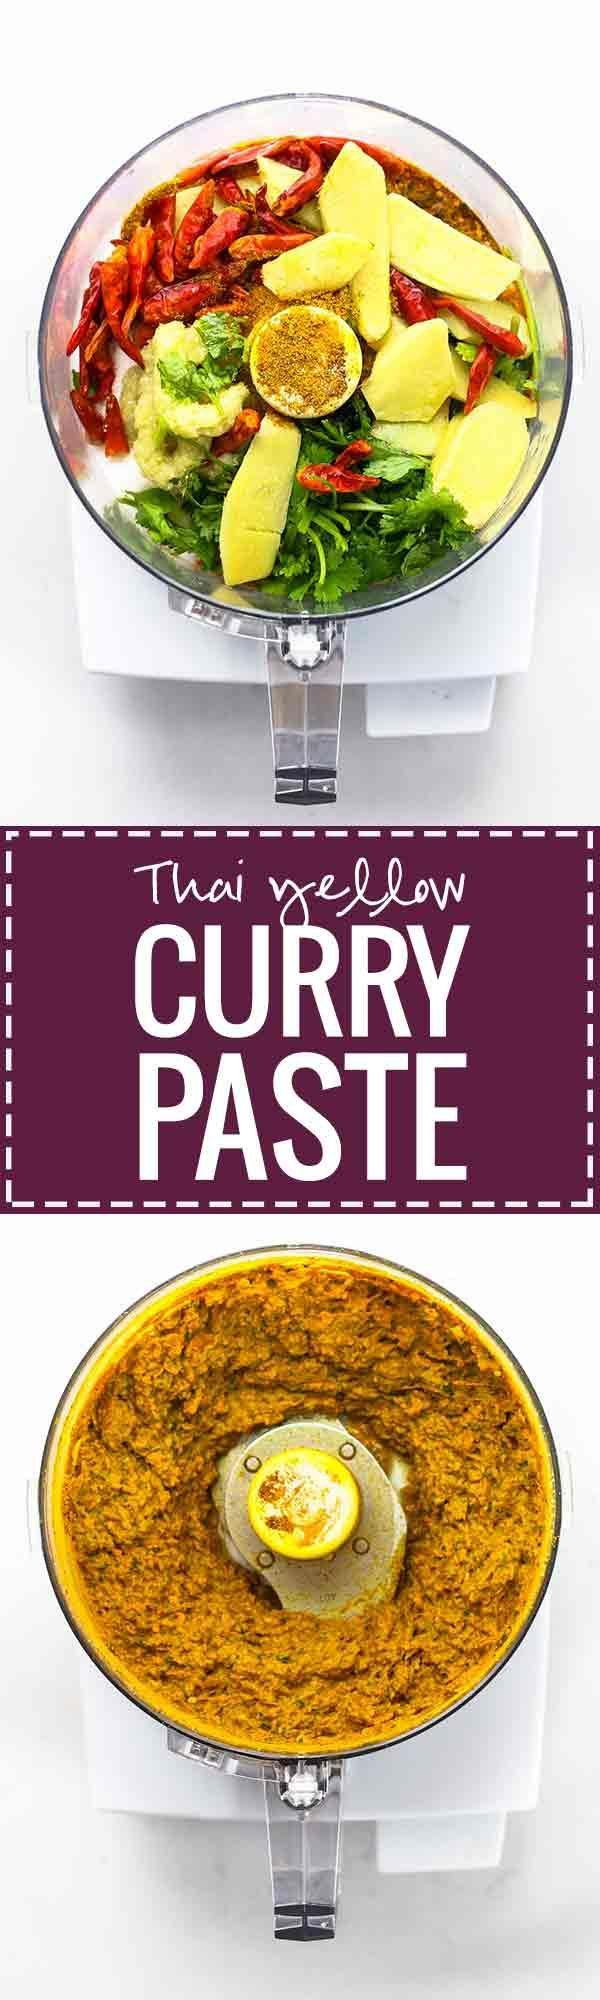 Easy Thai Yellow Curry Paste - made with ingredients that can be found at almost any grocery store! This easy recipe takes 45 minutes and gives you enough curry paste for 4+ batches of curry, and it freezes perfectly. Vegan!   pinchofyum.com